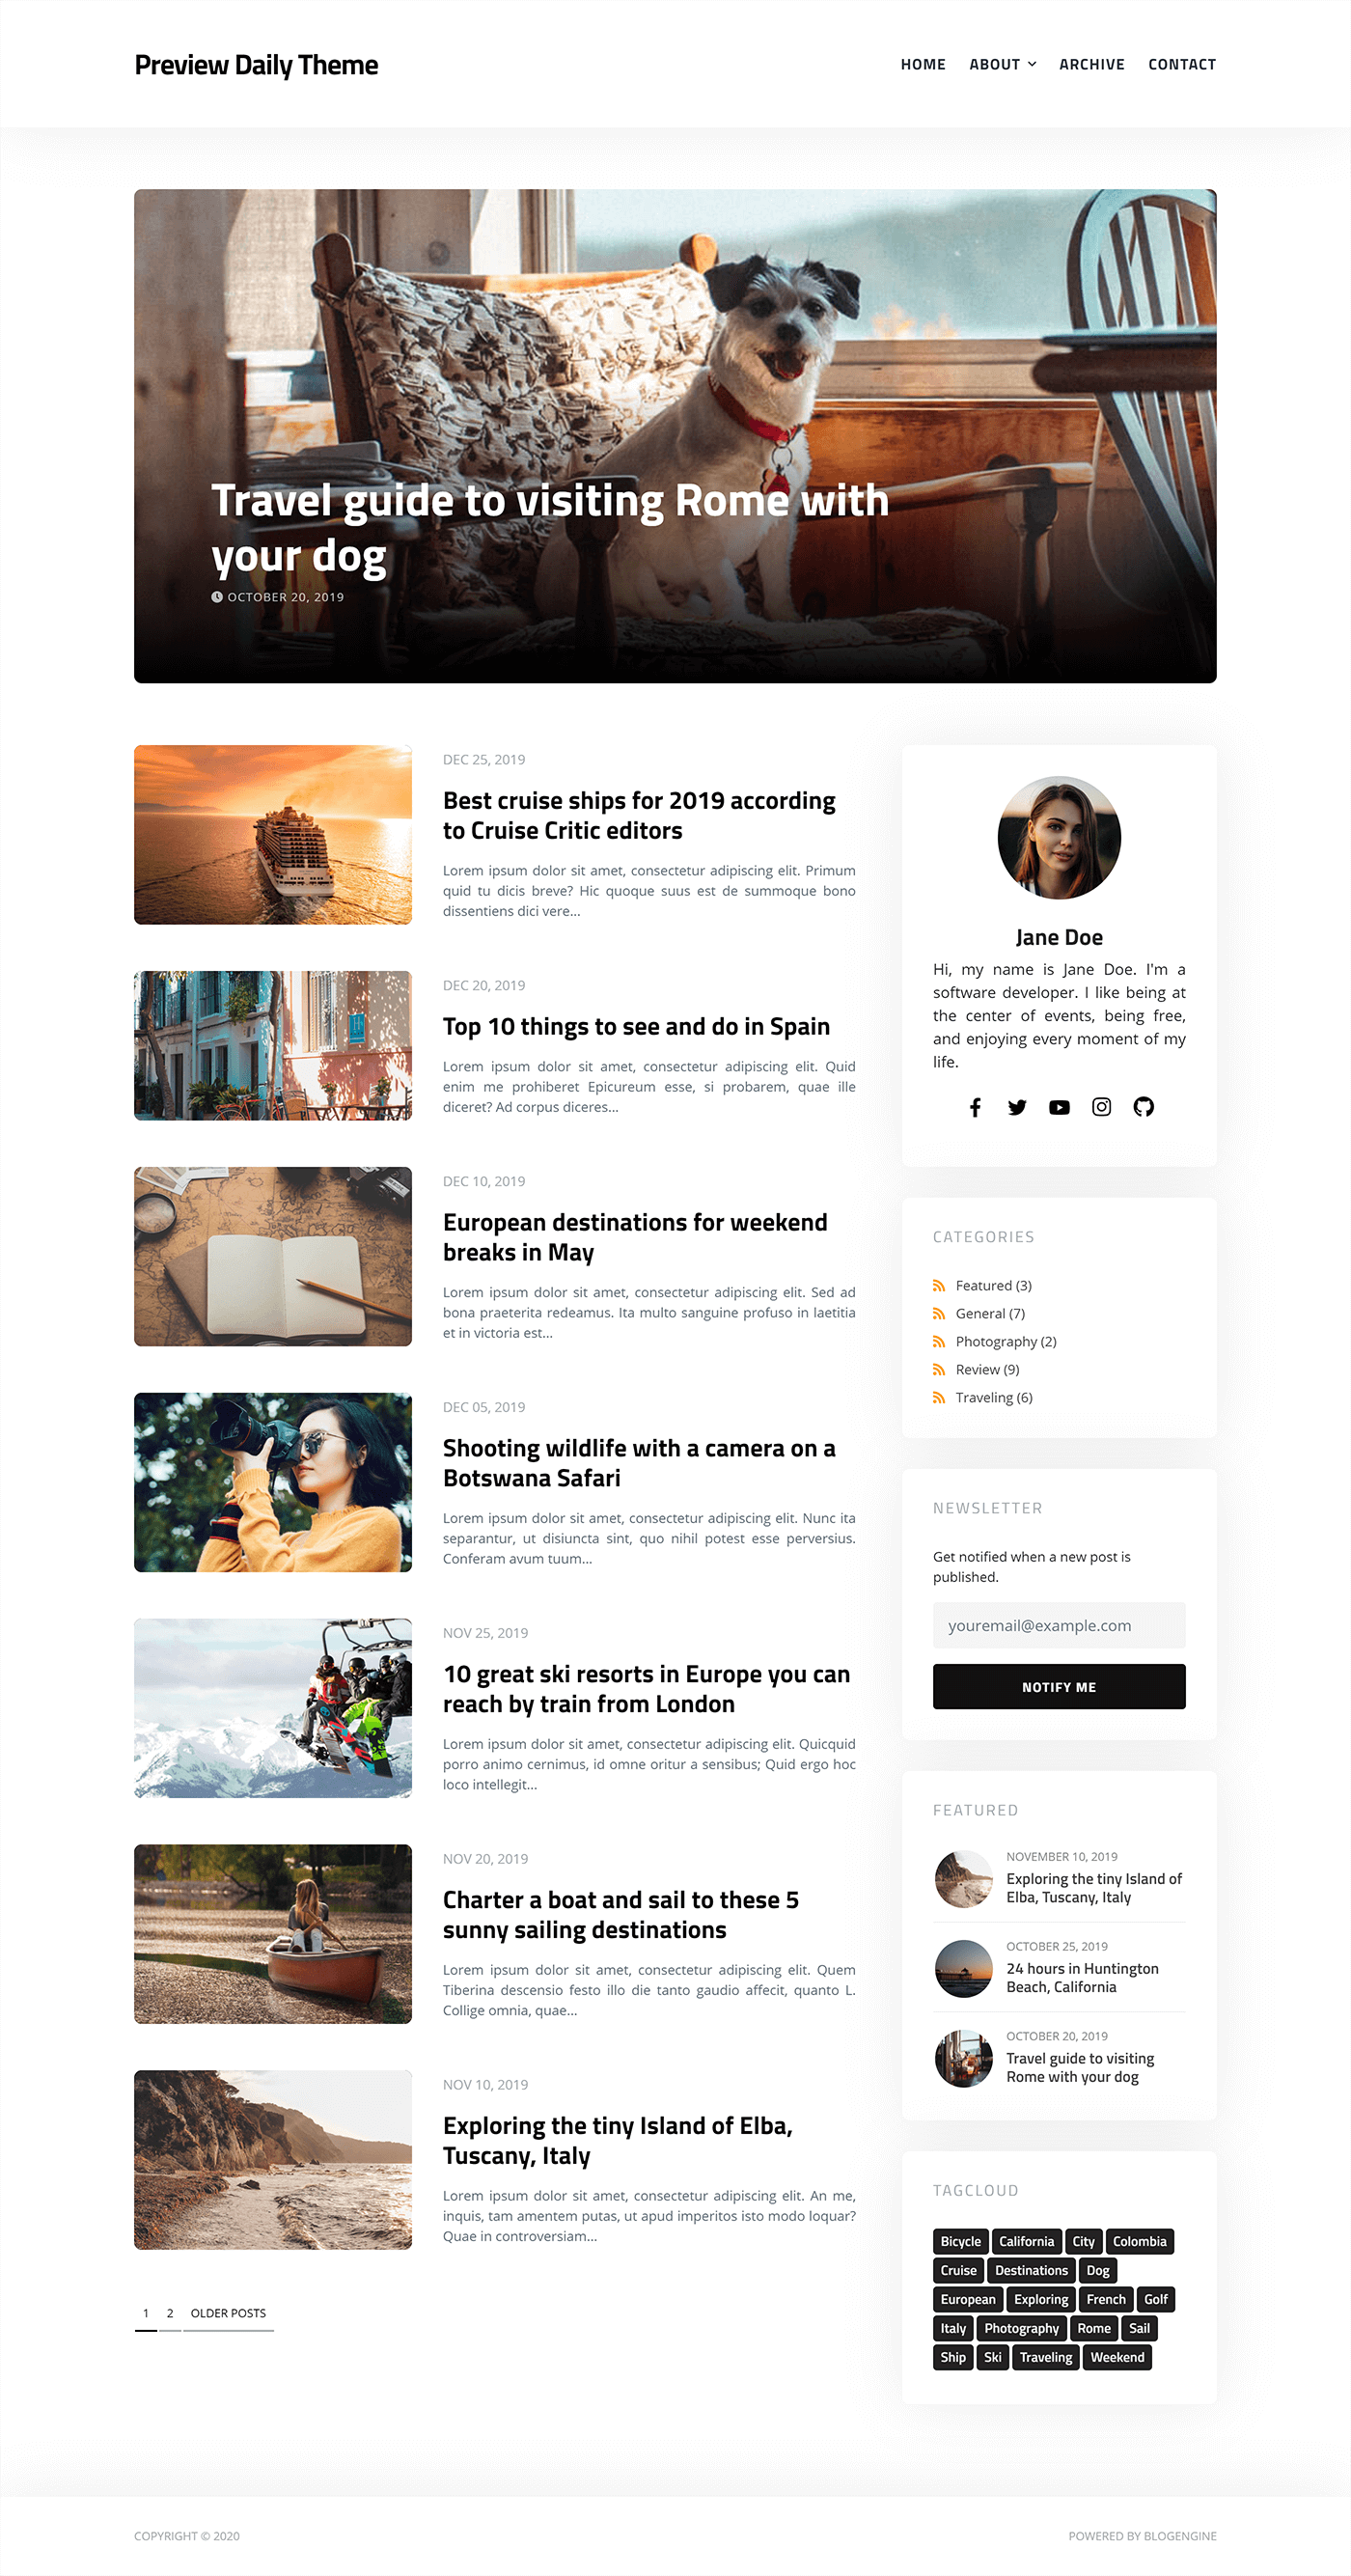 Daily BlogEngine Theme - Home Page